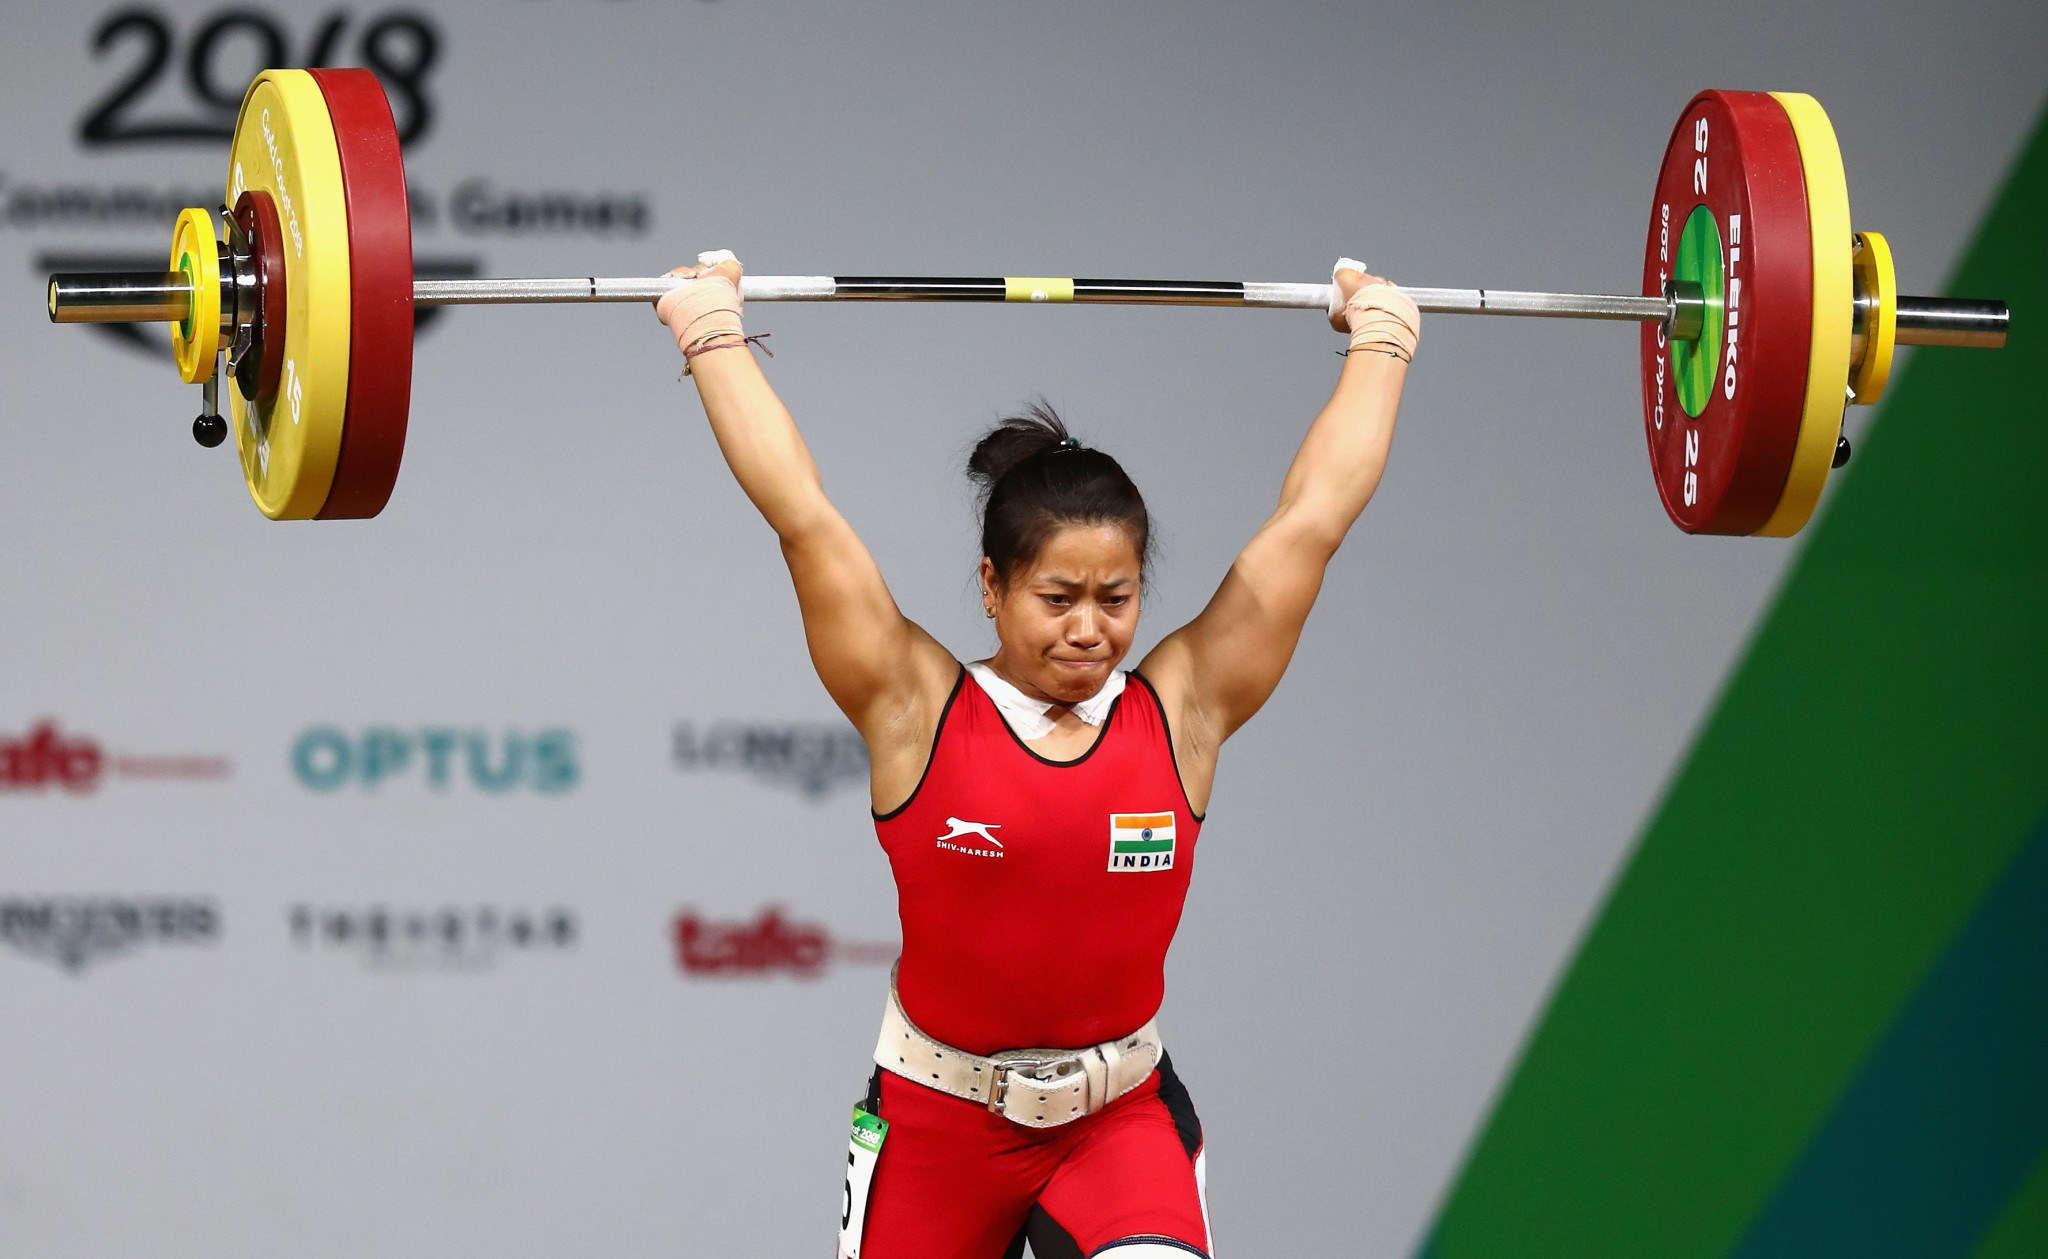 Commonwealth champion Sanjita Khumukcham has failed a drugs test ©Getty Images